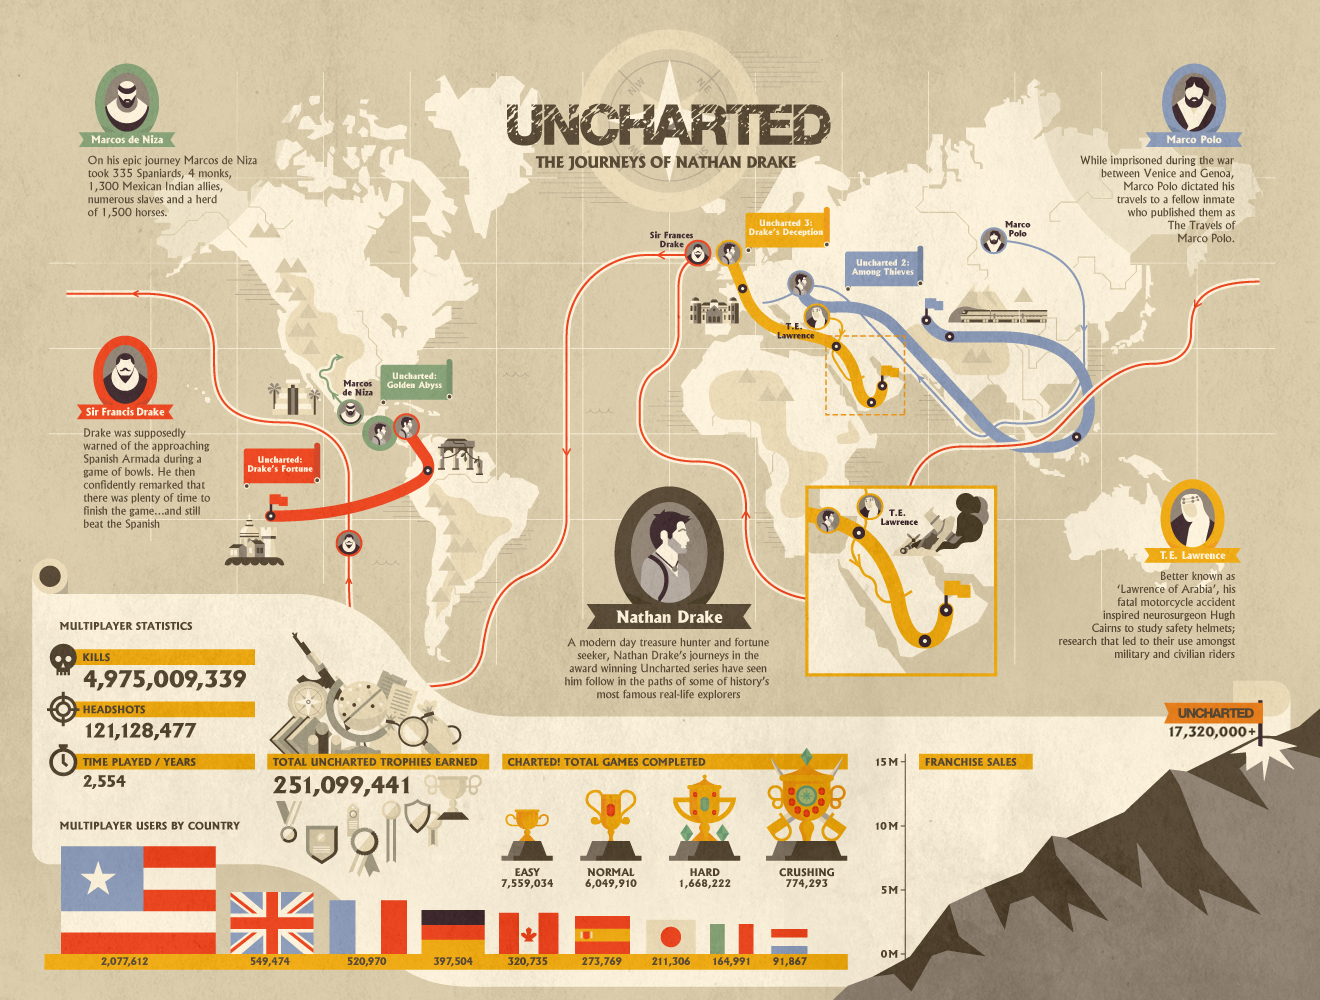 totally-awesome-uncharted-infographic-20120424114247709